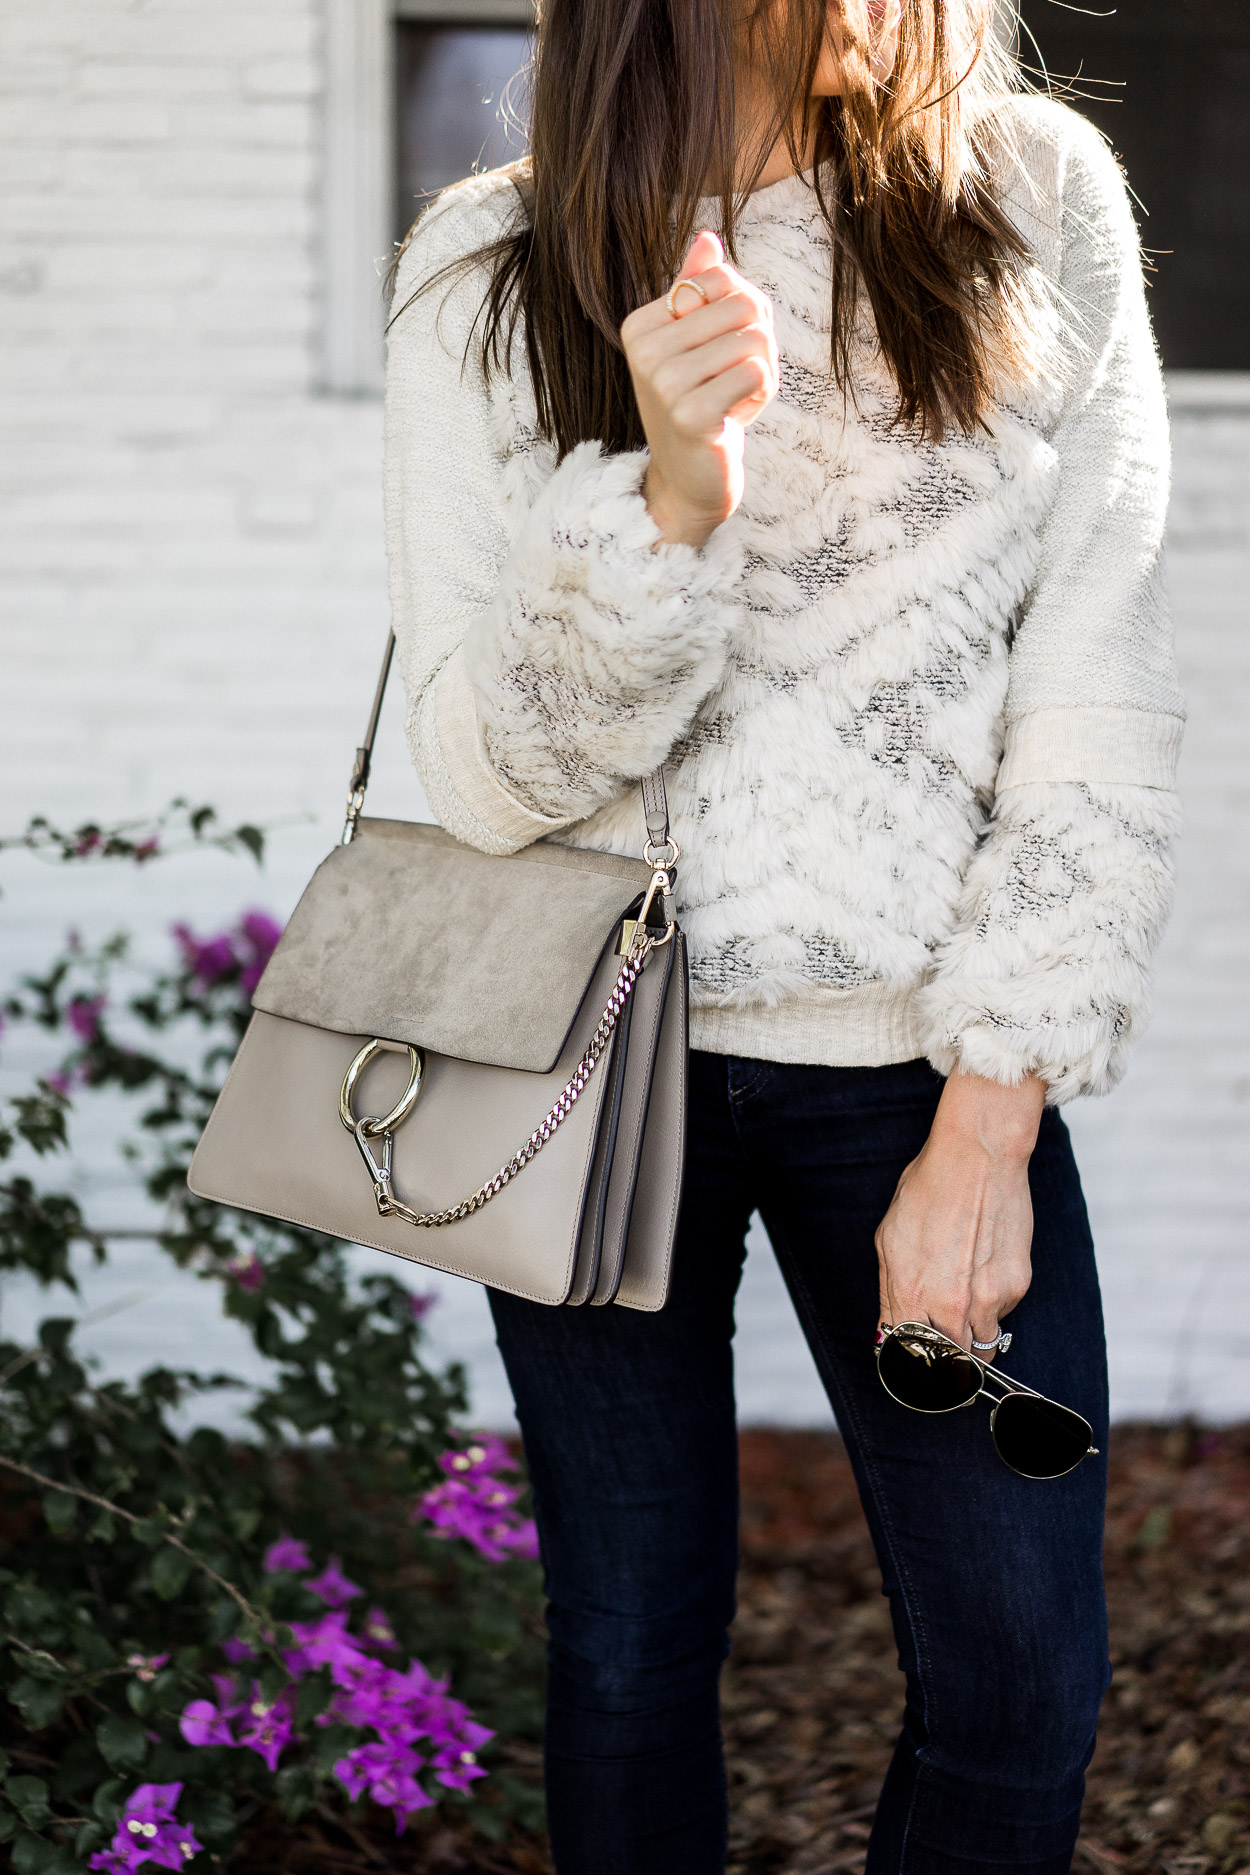 Amanda from A Glam Lifestyle blog wears an Anthropologie textured sweatershirt as one of her fave cozy sweaters